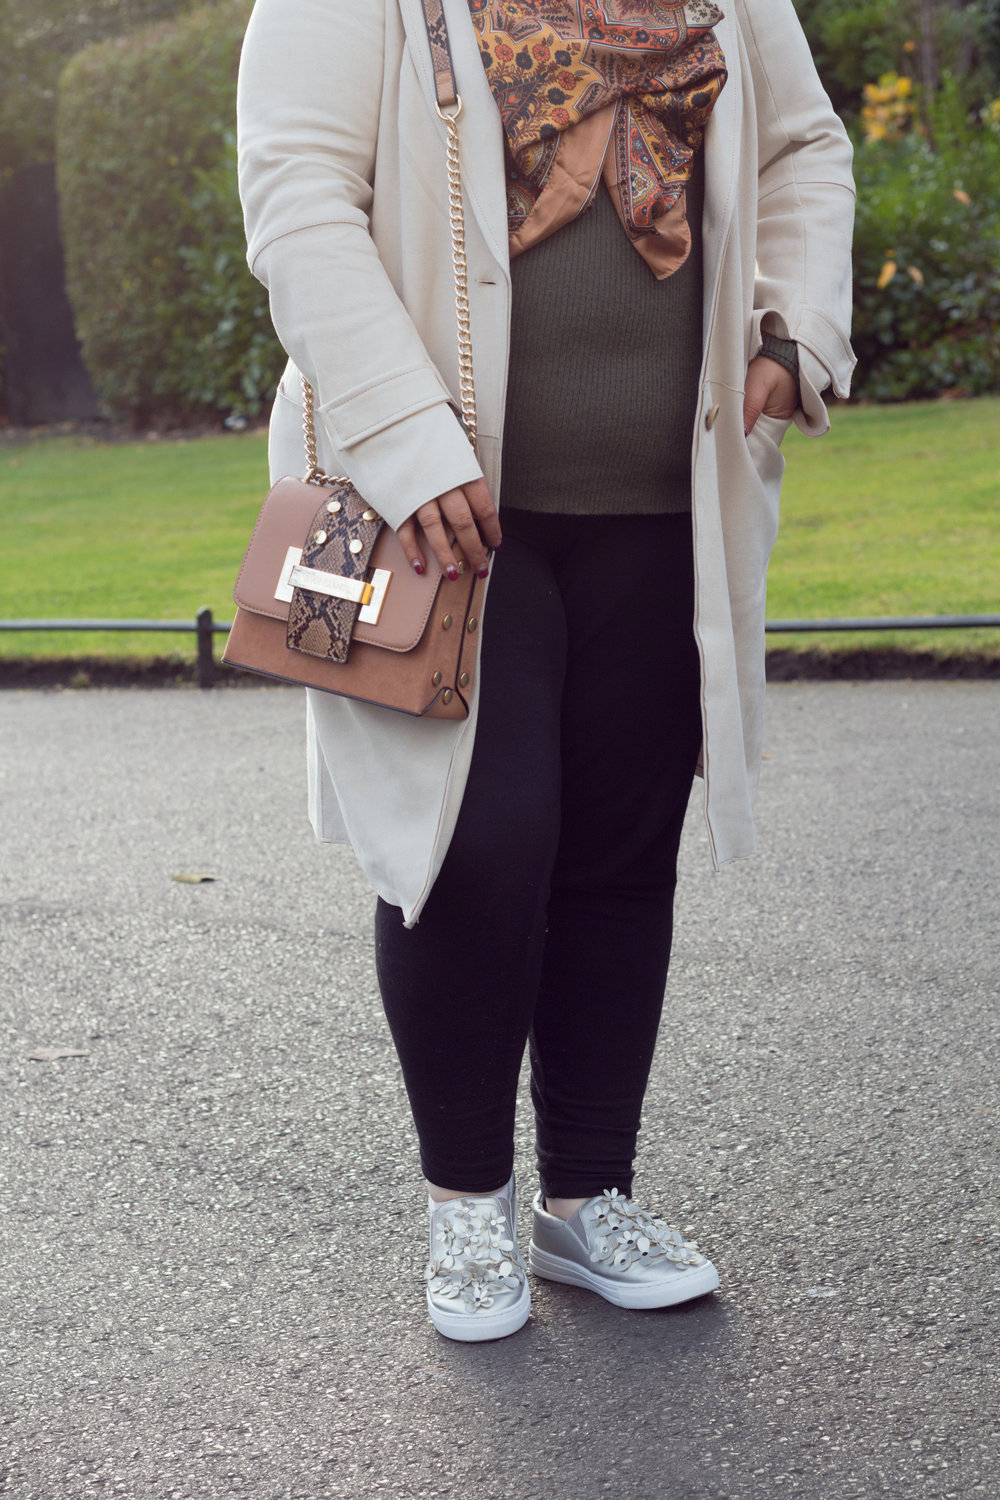 pearl-phelan-photographer-little-g-force-blogger-style-dublin-03.JPG